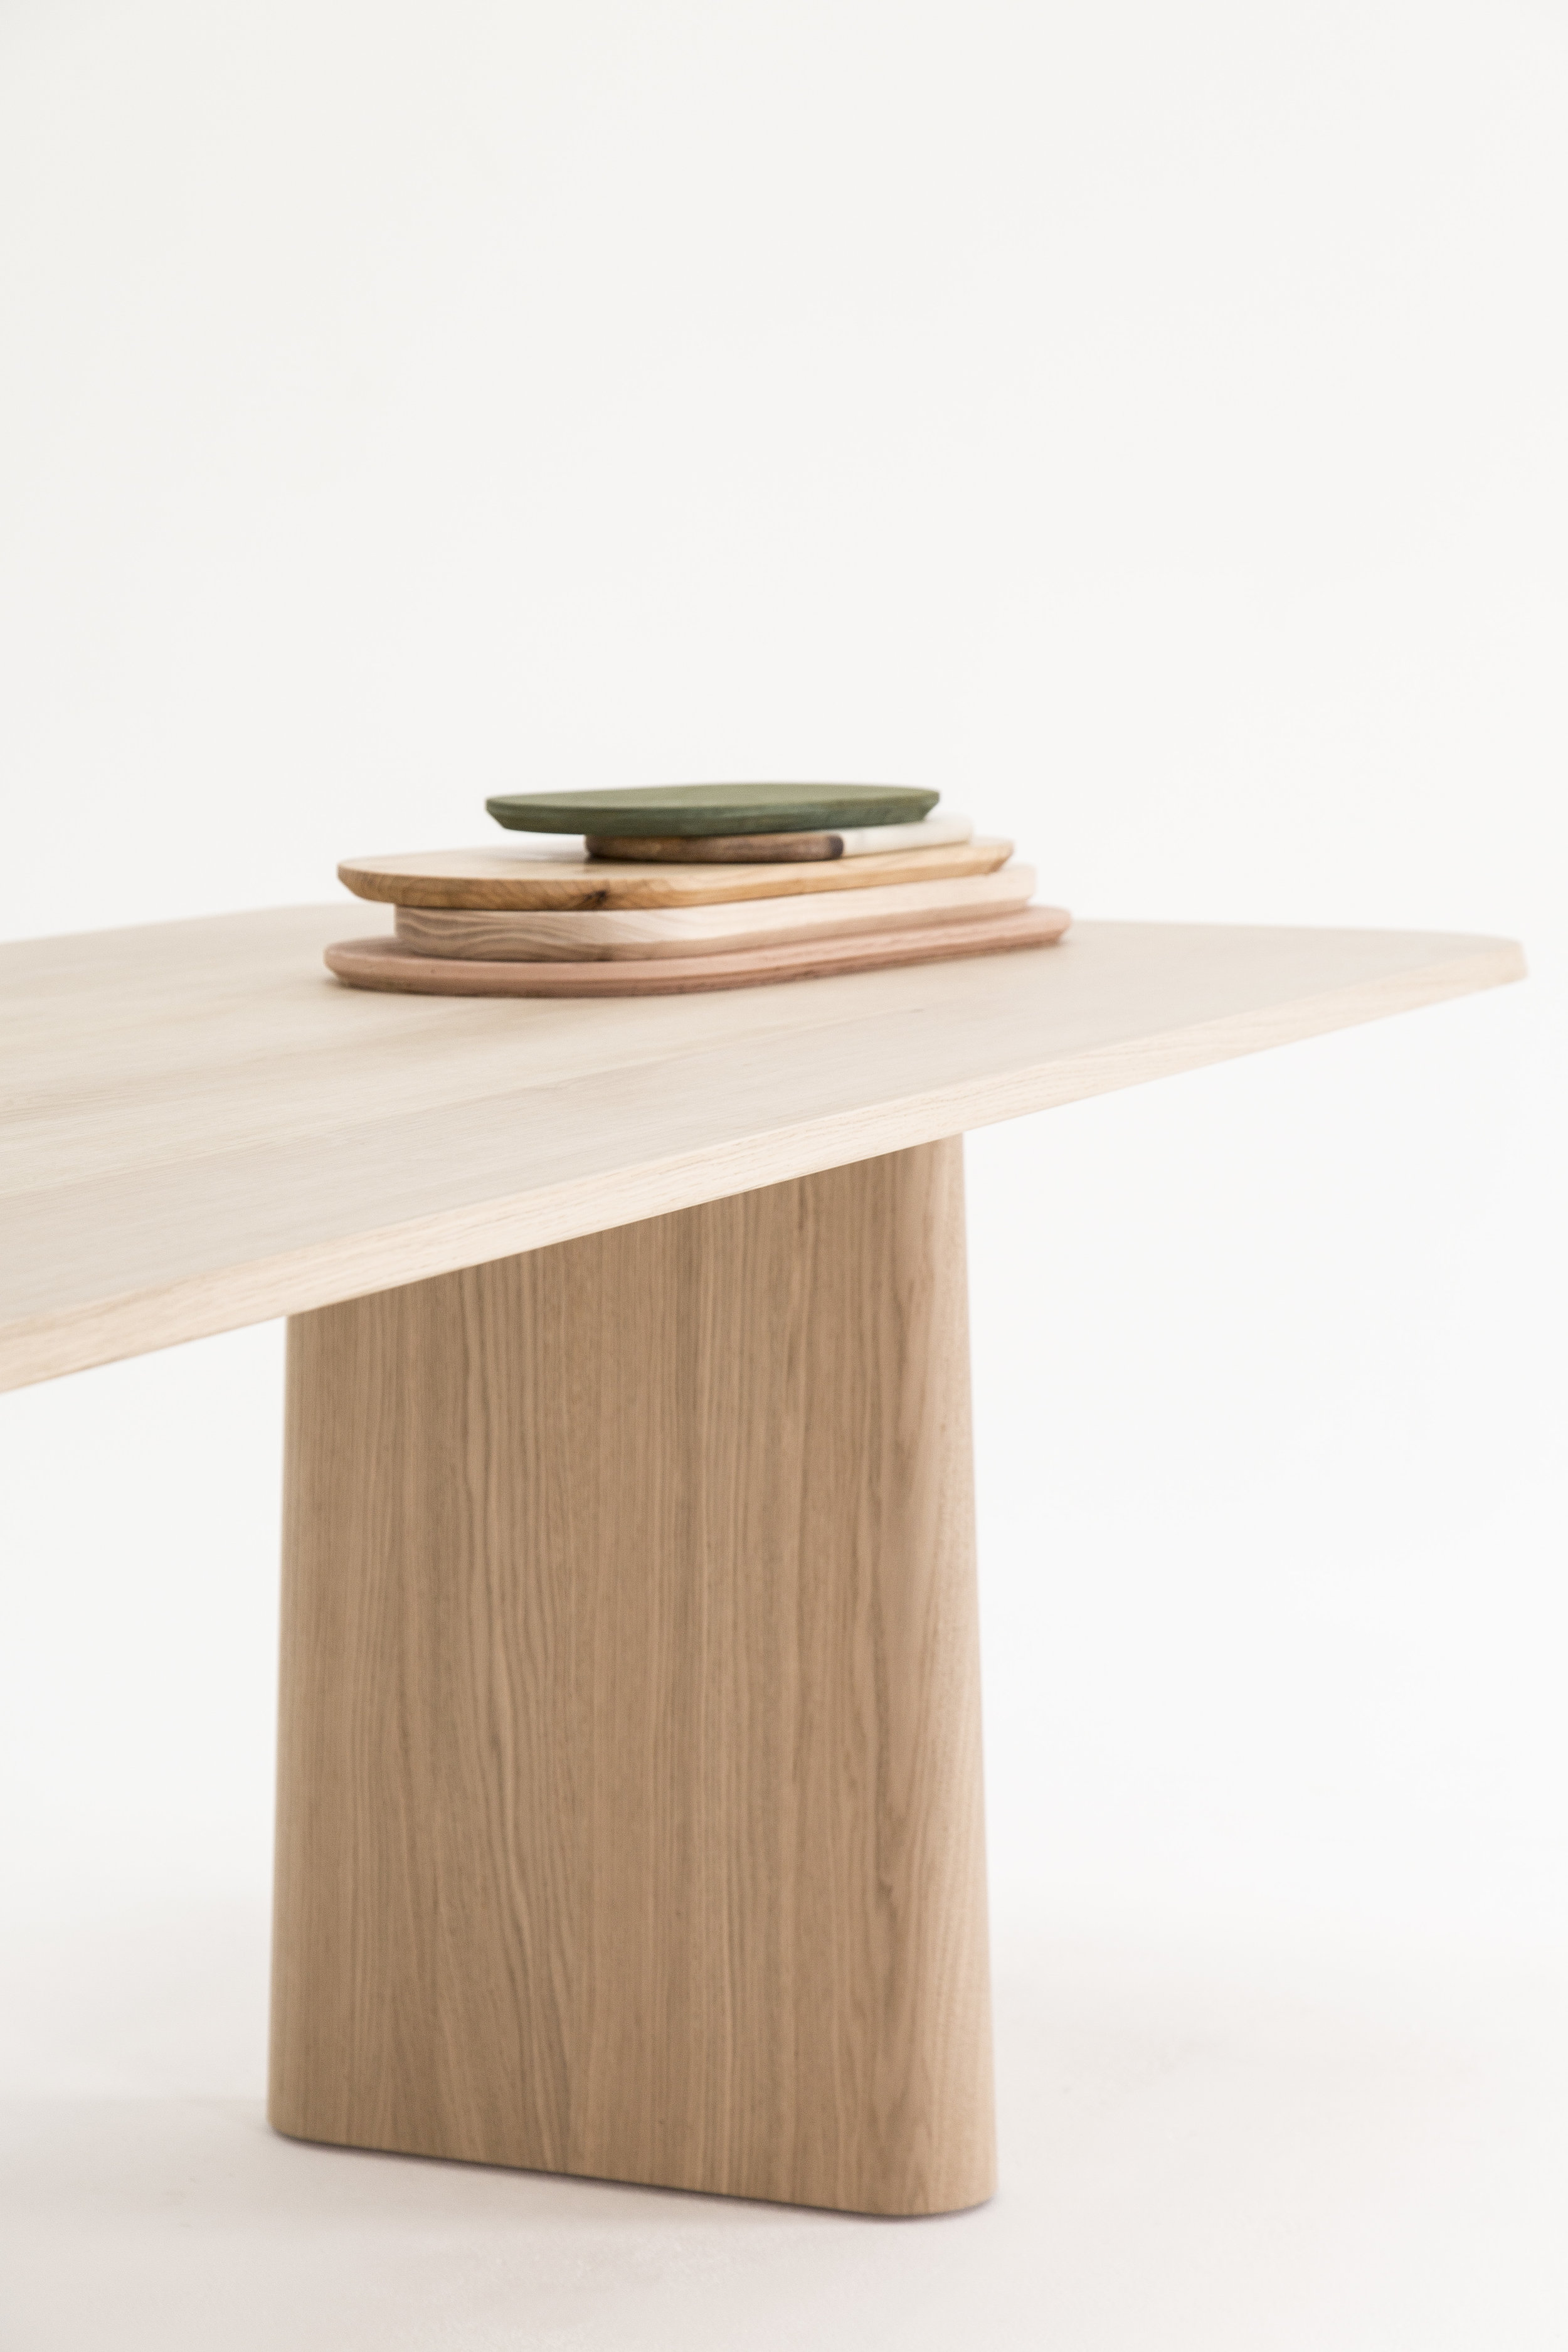 frank-london-collection-table-21-february-2018-0394.jpg